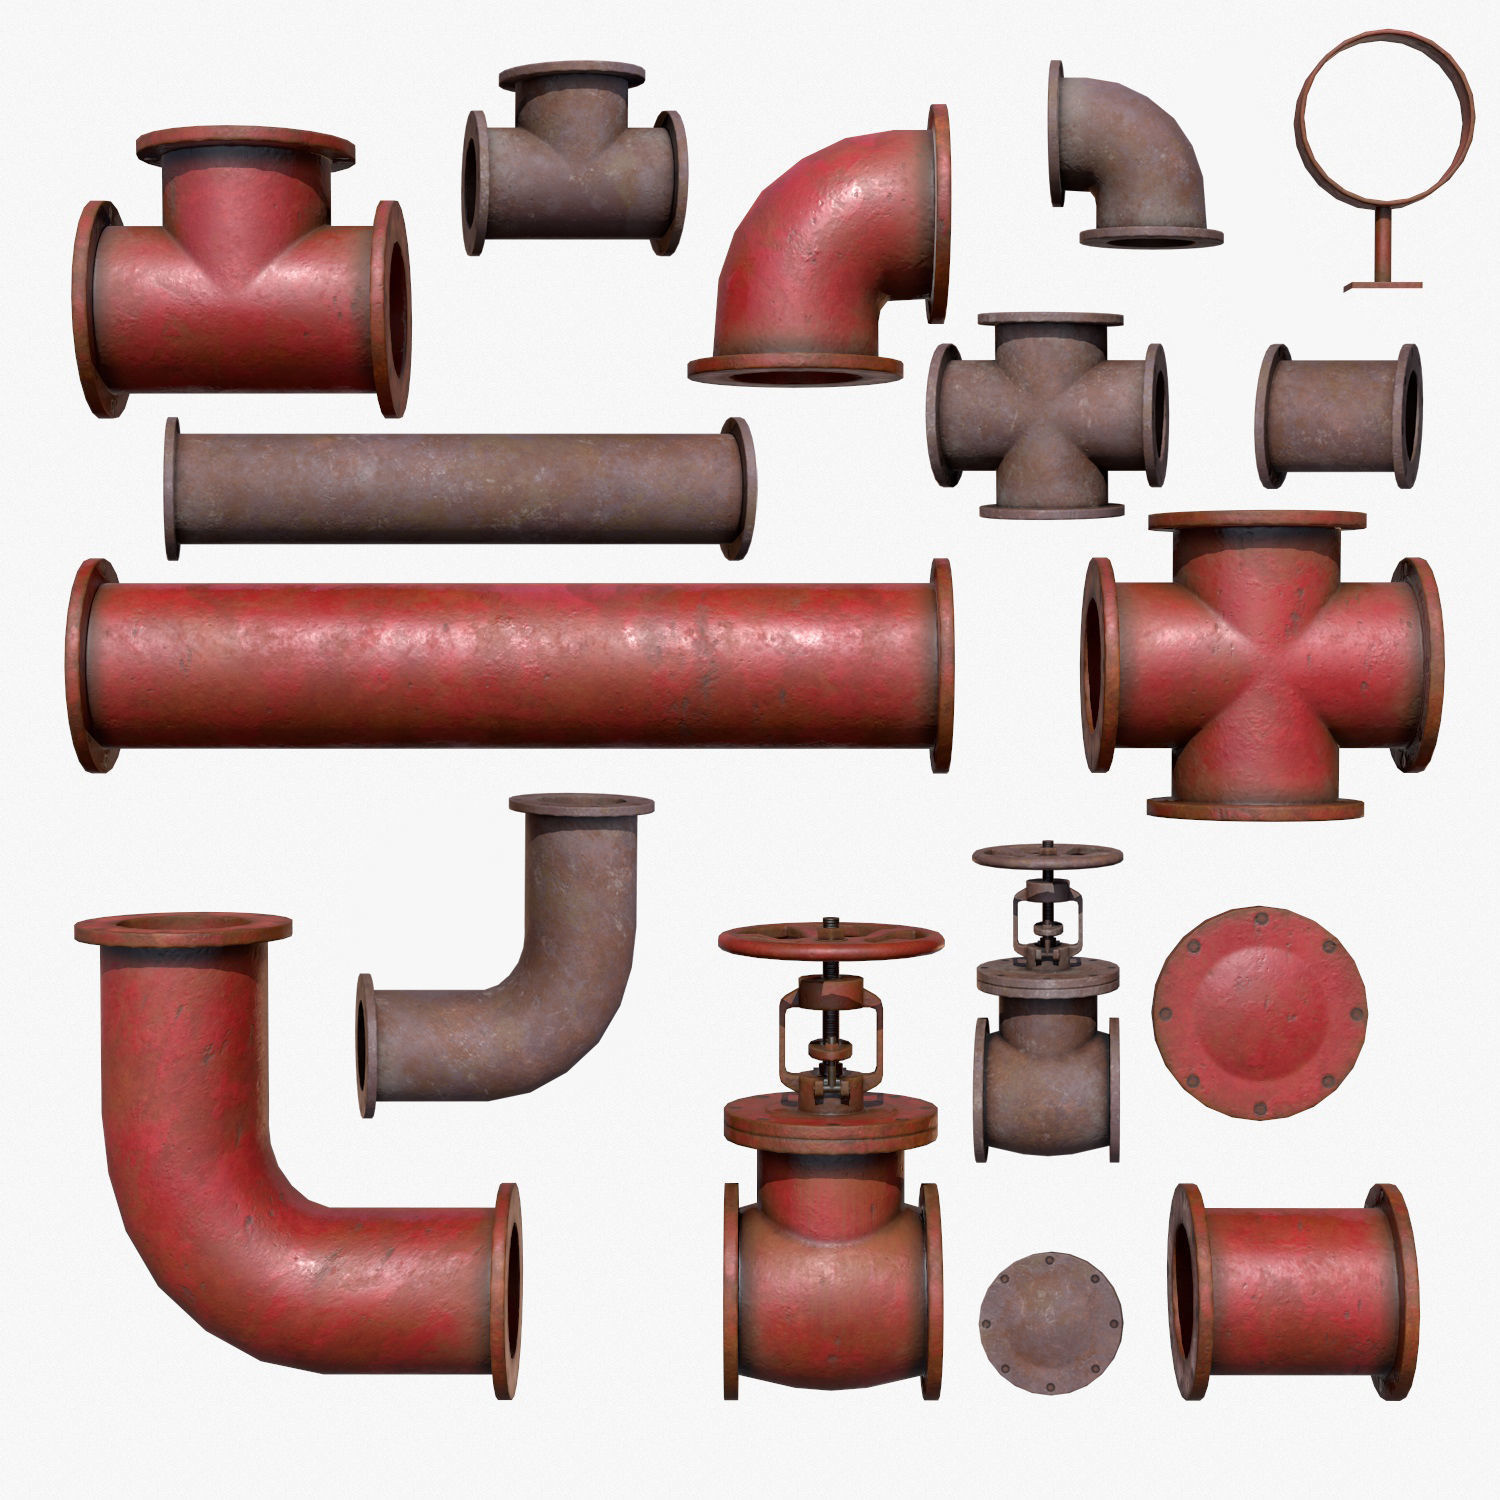 Industrial Pipes Low Poly